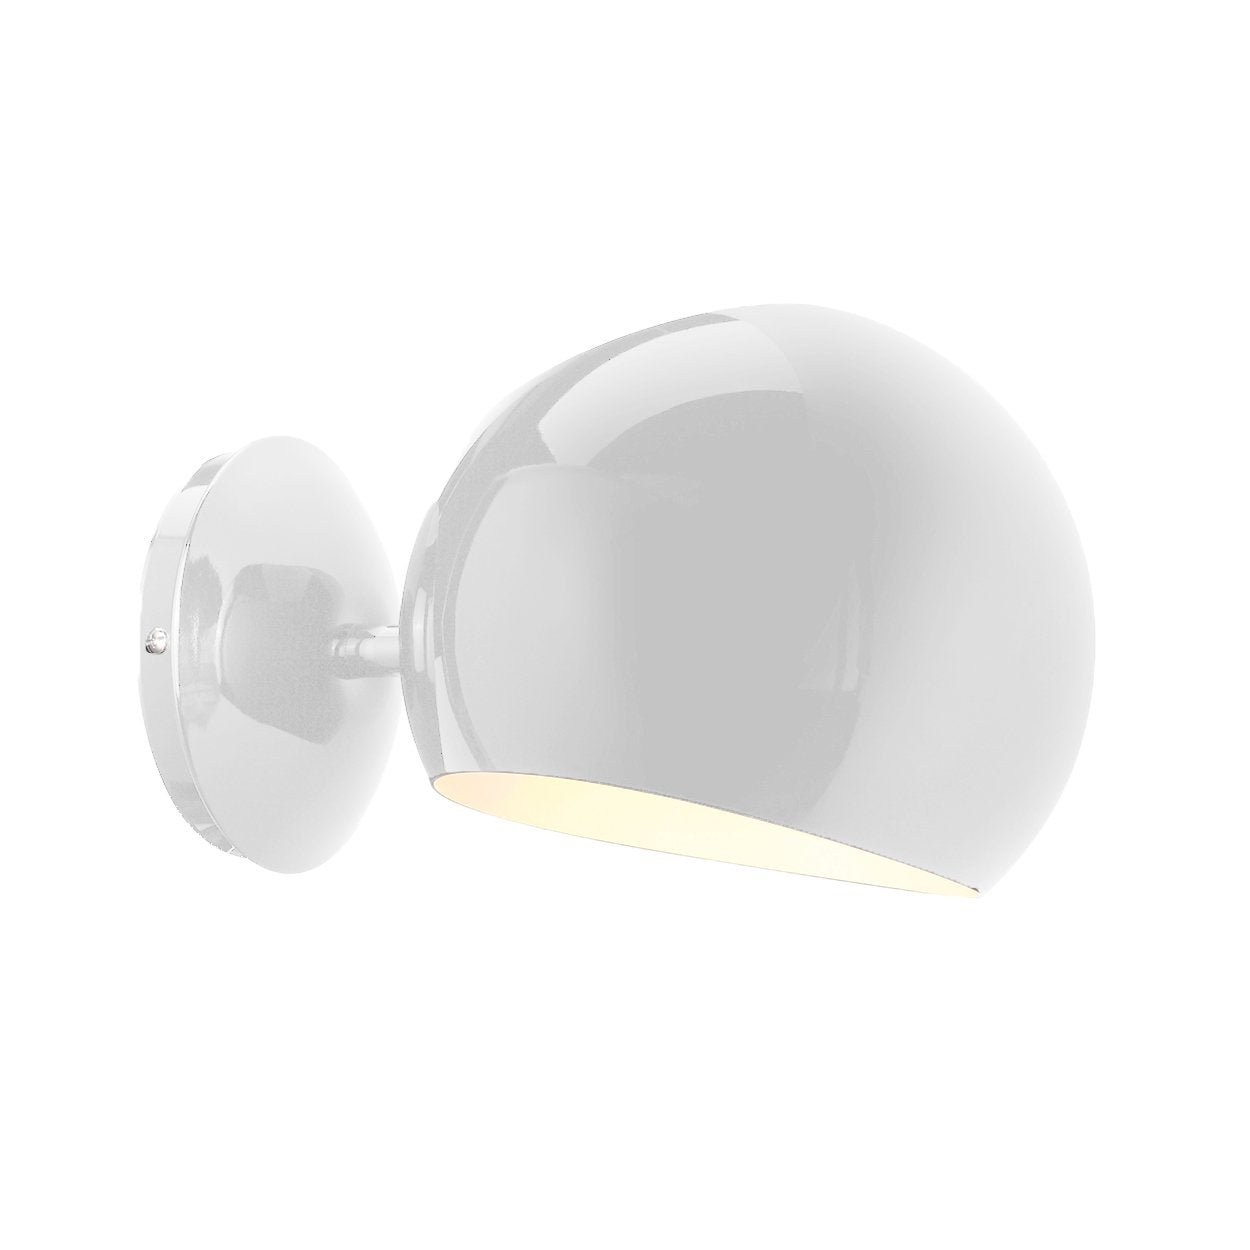 [LBW069WHTL] Arboga wall sconce